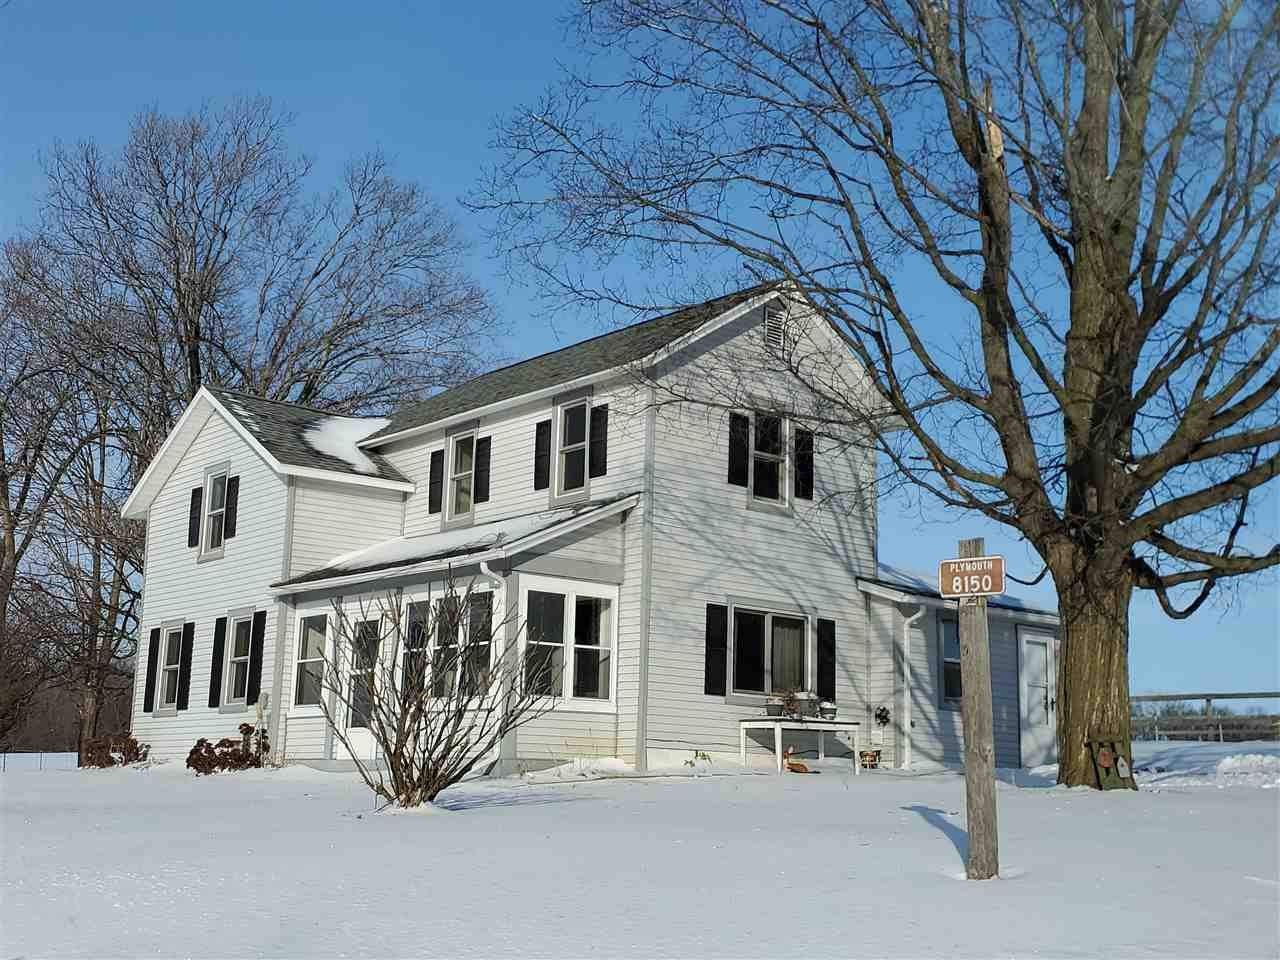 8150 W Plymouth Church Rd, Orfordville, WI 53076 - MLS#: 1859131